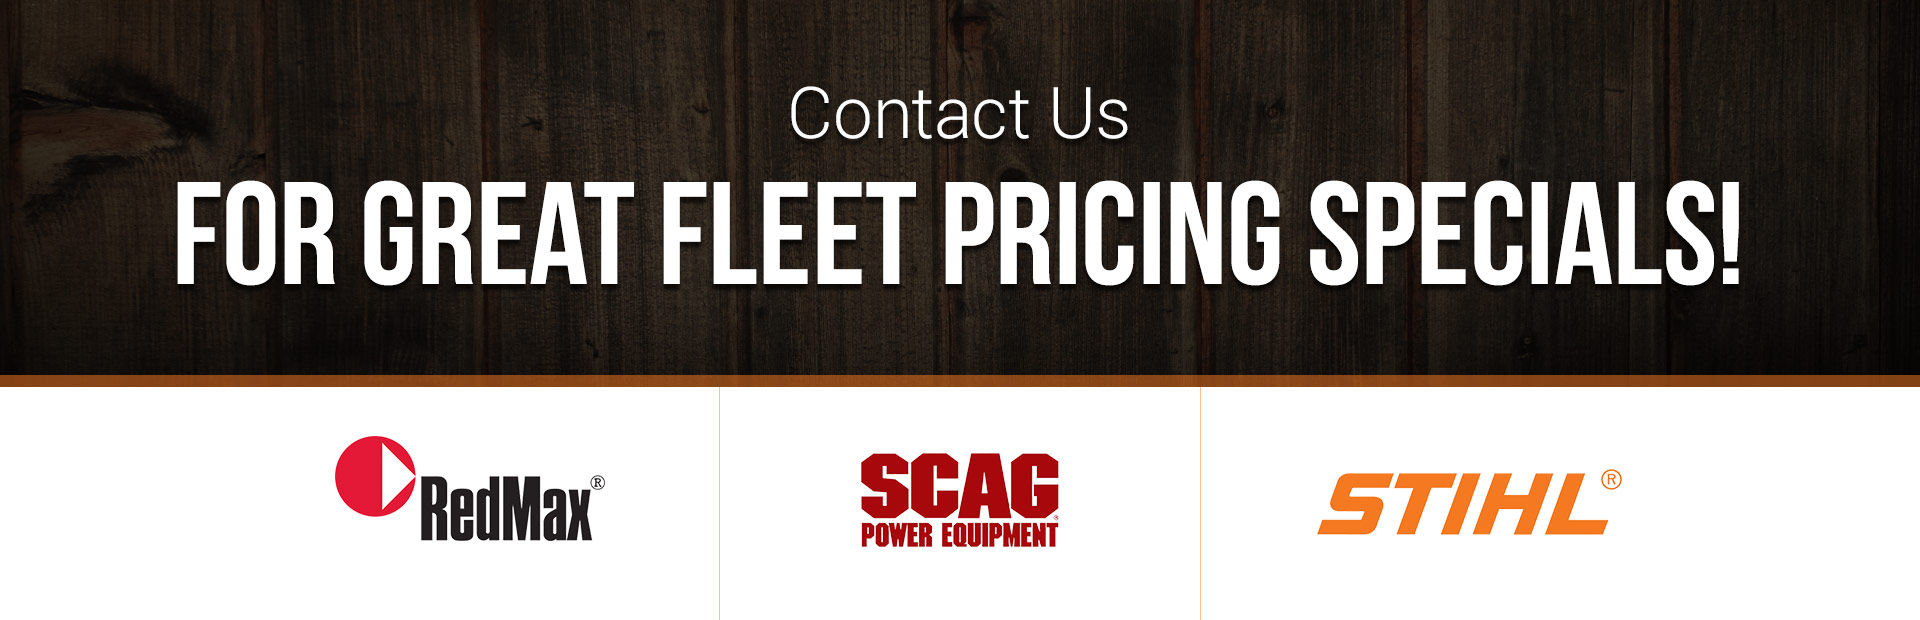 Contact us for great fleet pricing specials!